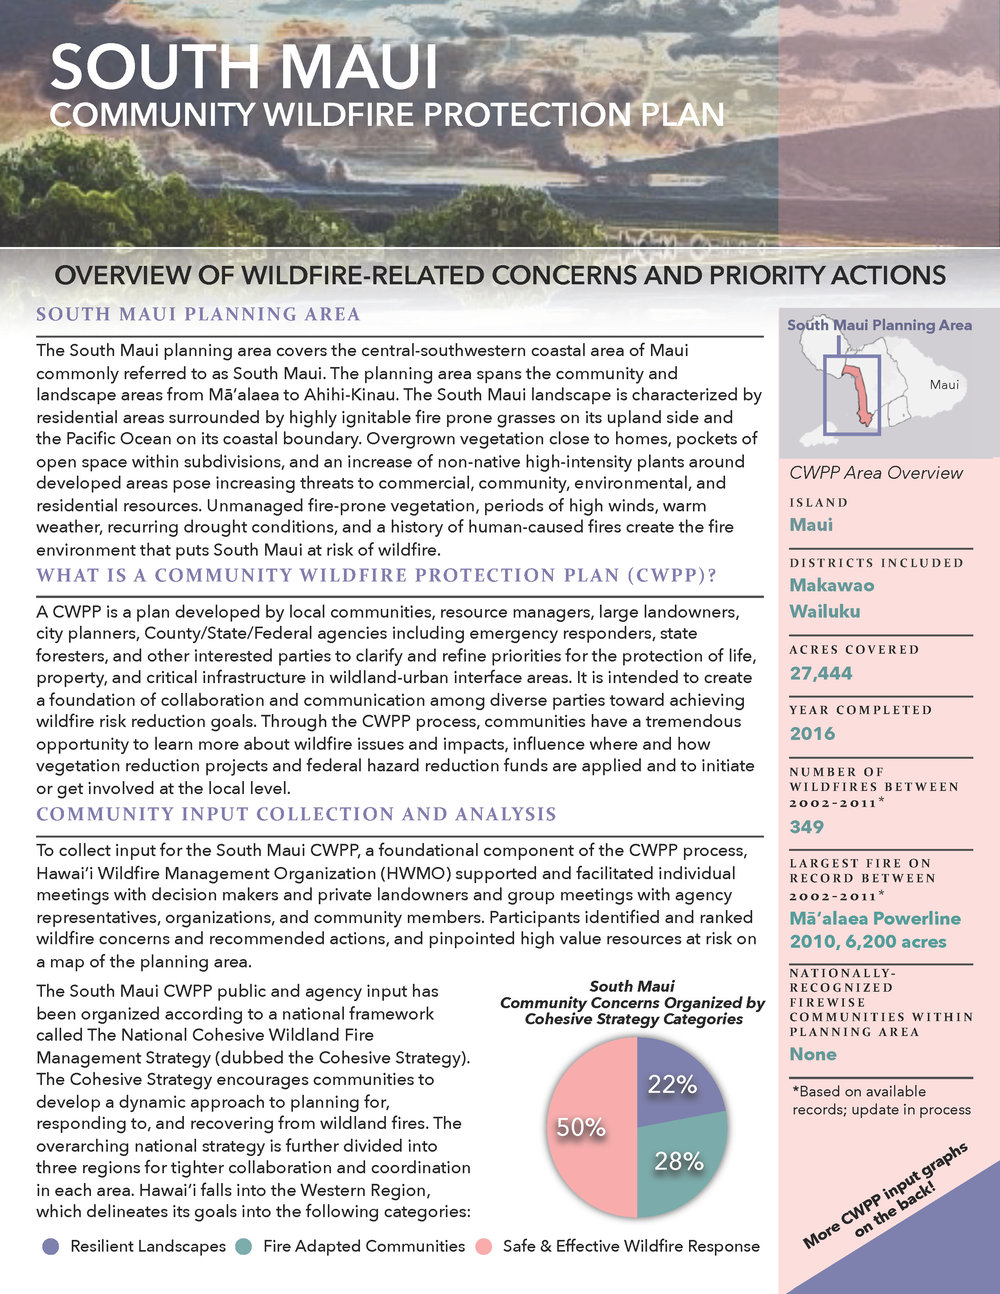 2018_4_18_CWPP Concerns and Priorities Overview_South Maui_FINAL_HWMO_Page_1.jpg